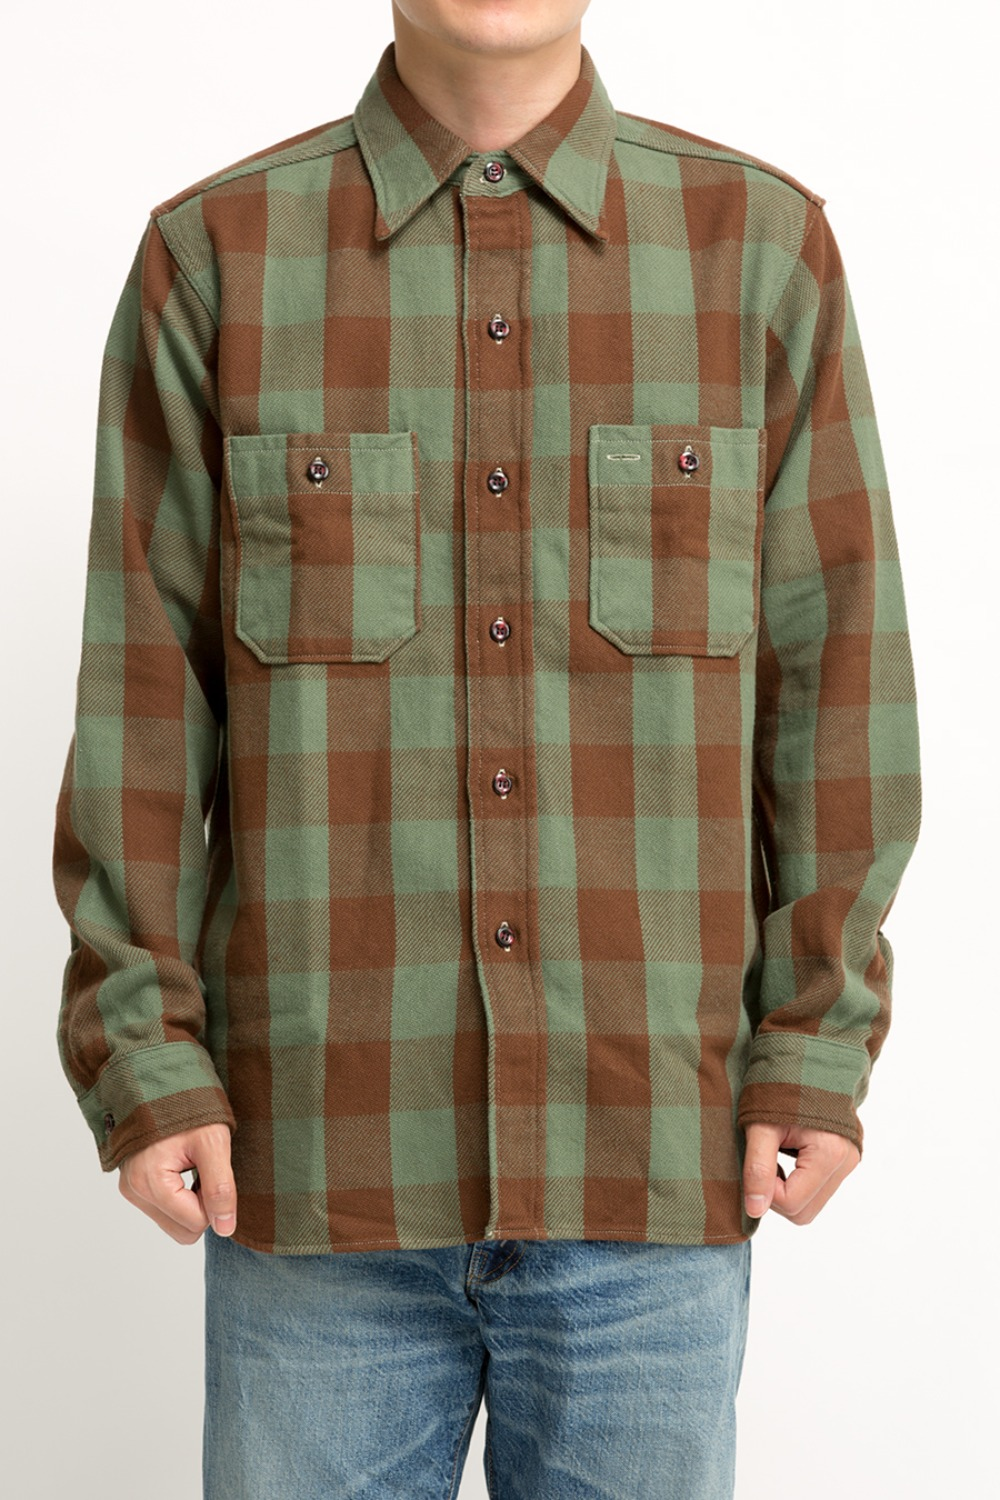 LOT 3104 FLANNEL SHIRTS PATTERN A BROWN/GREEN